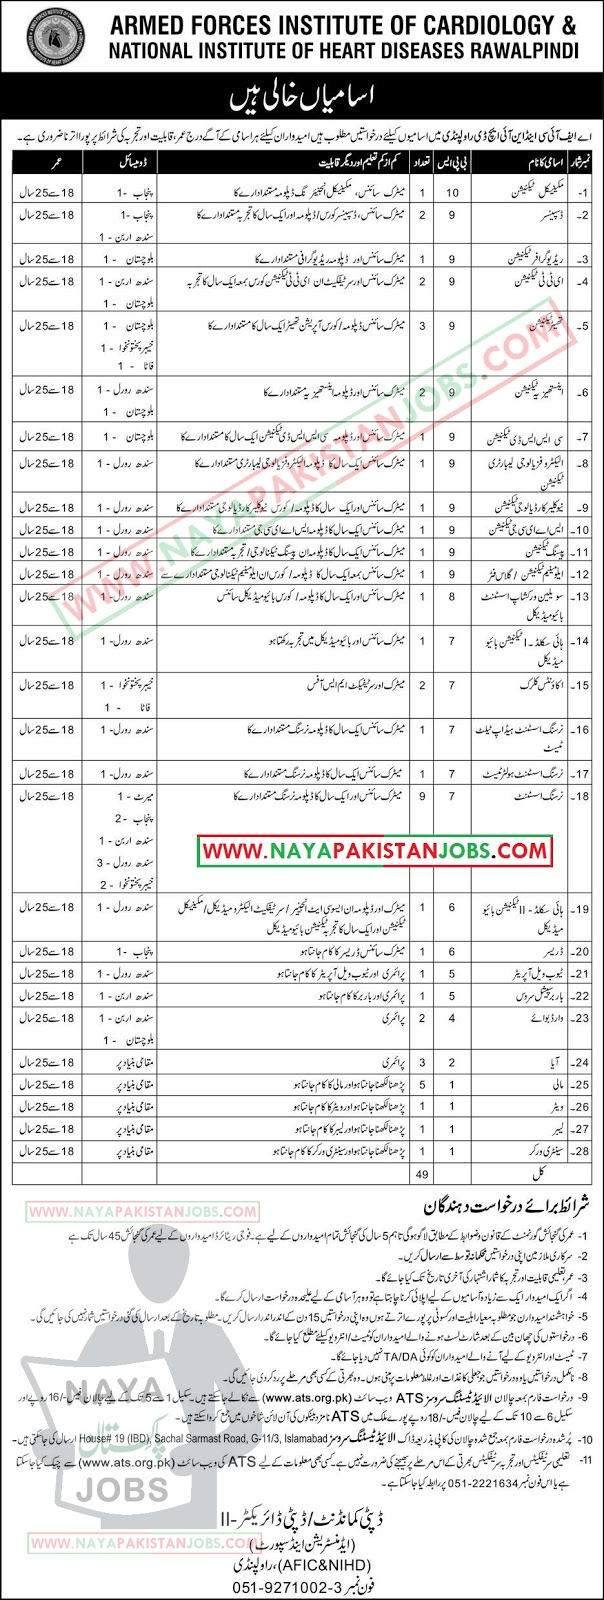 Armed Forces Institute Of Cardiology Jobs 2019 March , Armed Forces Institute Of Cardiology Jobs 2019 March